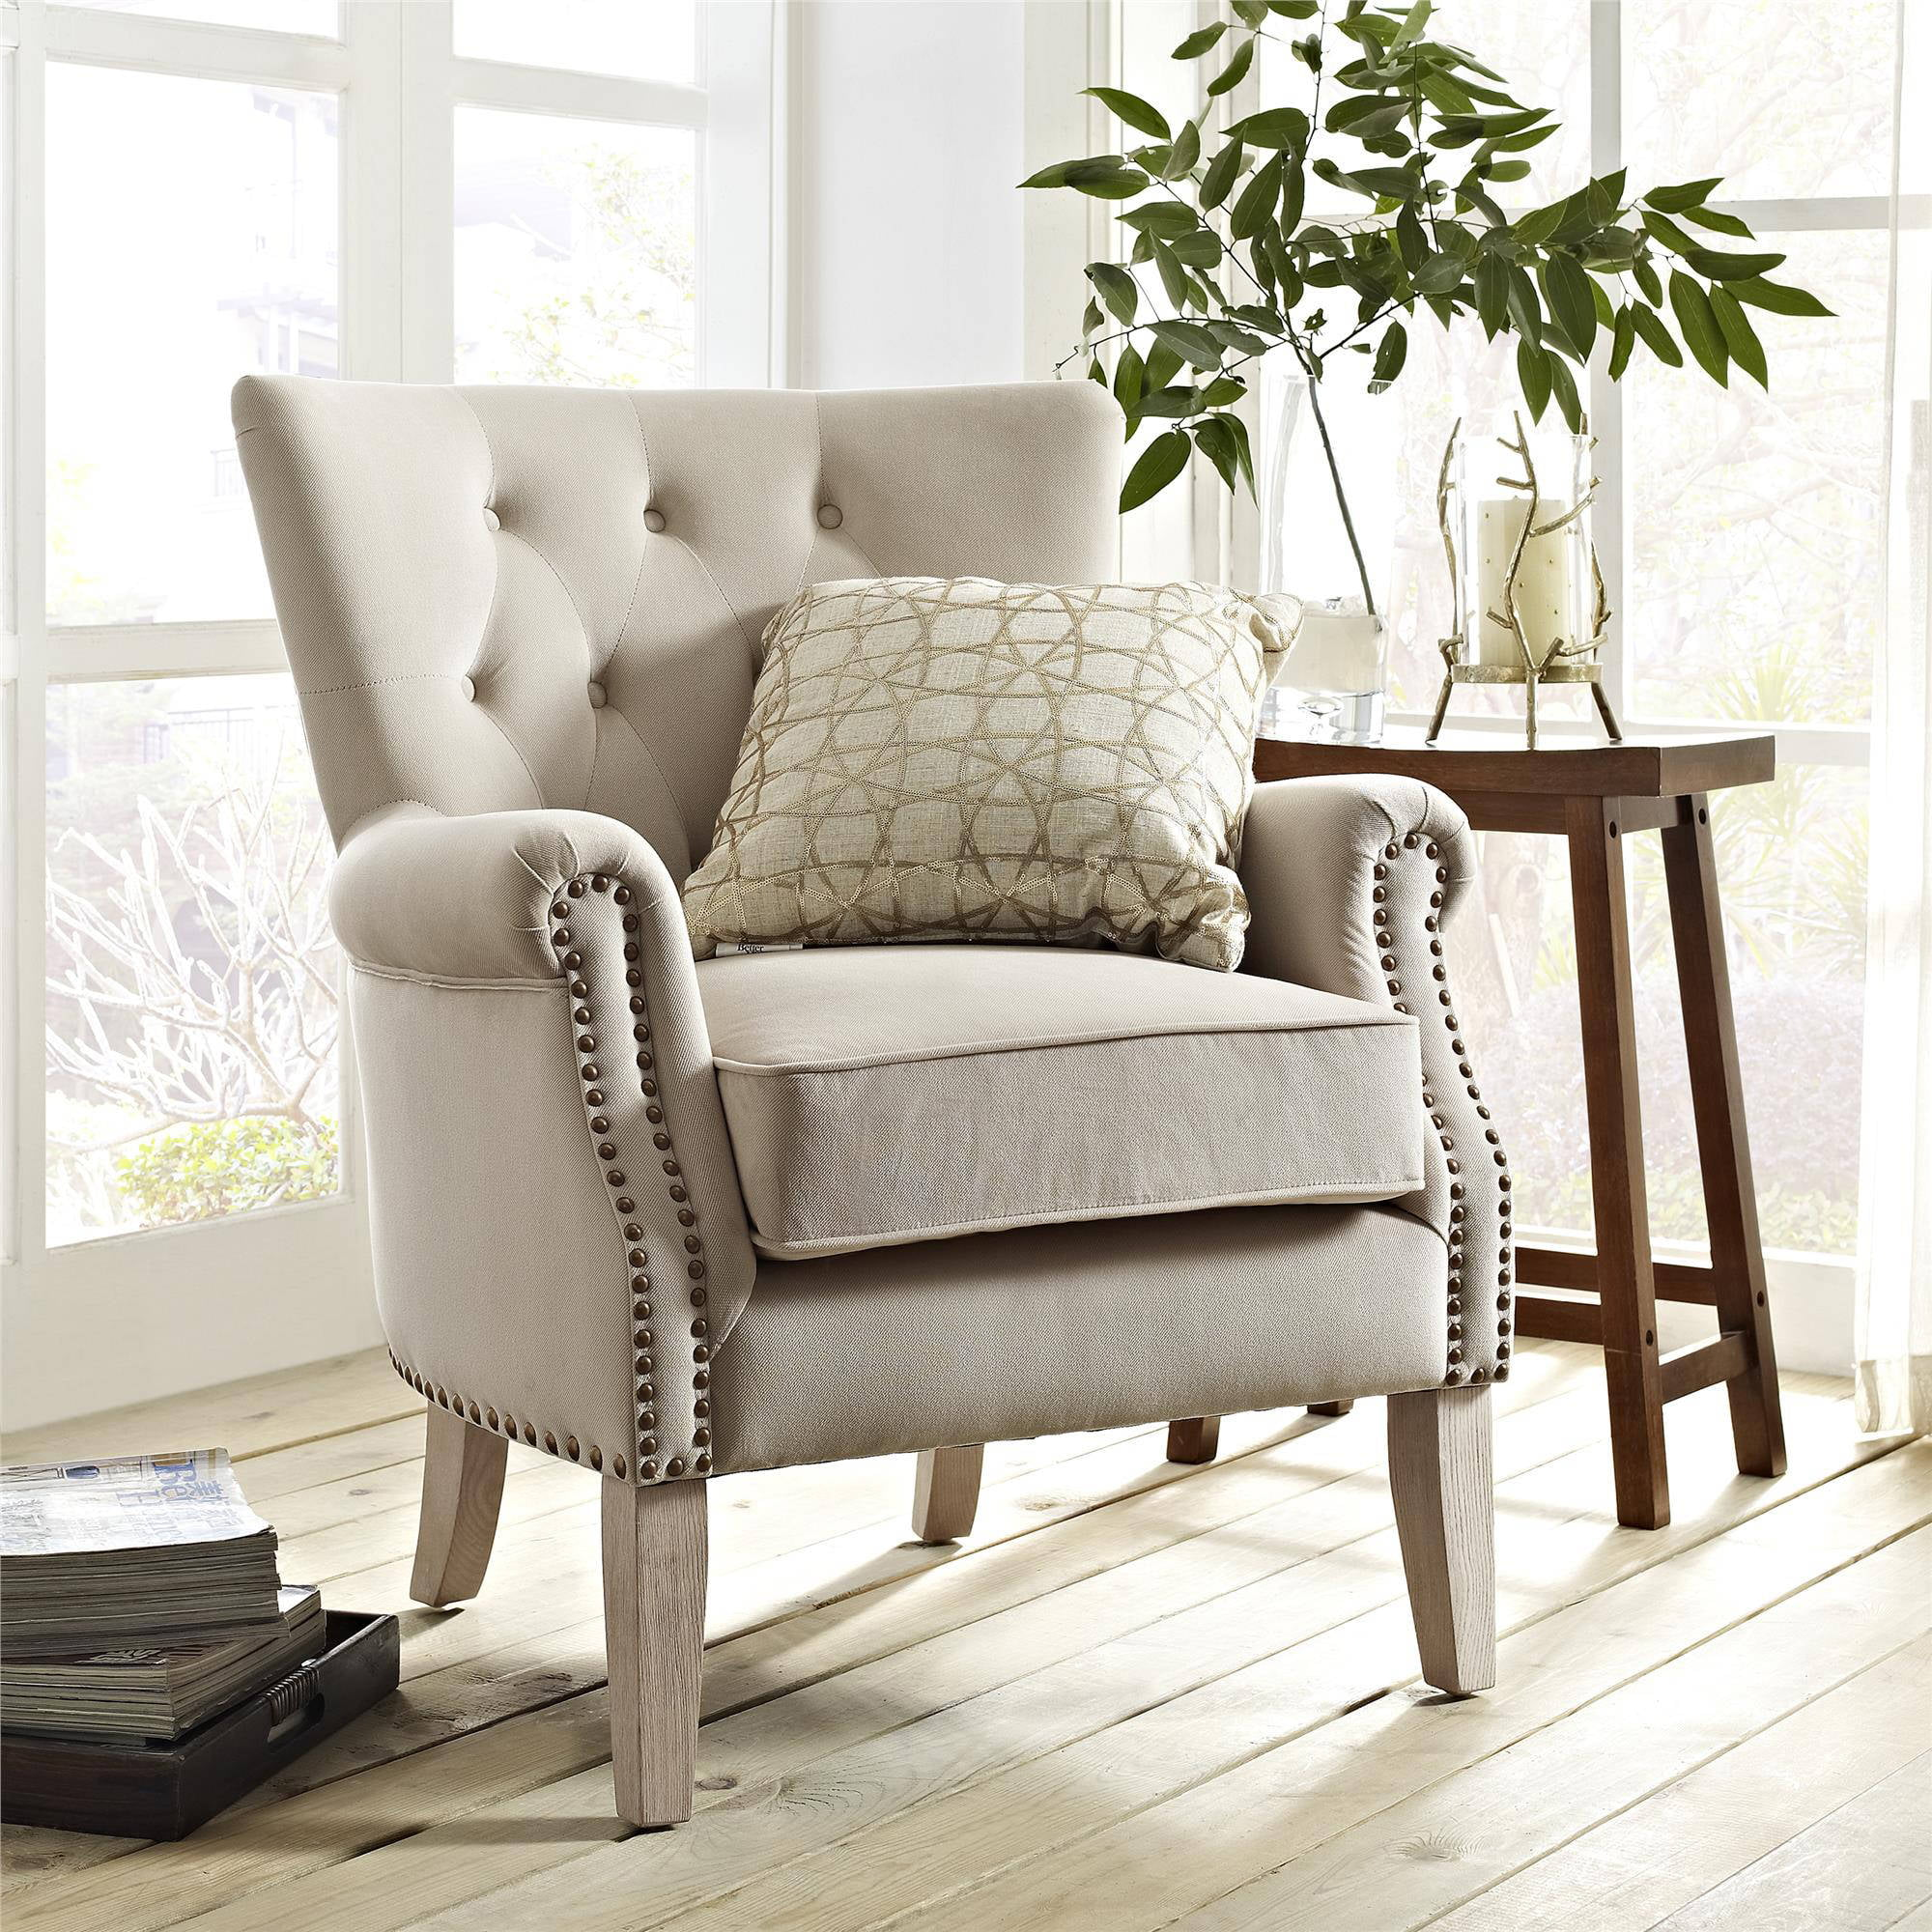 Better Homes & Gardens Rolled Arm Accent Chair, Multiple Colors -  Walmart.com